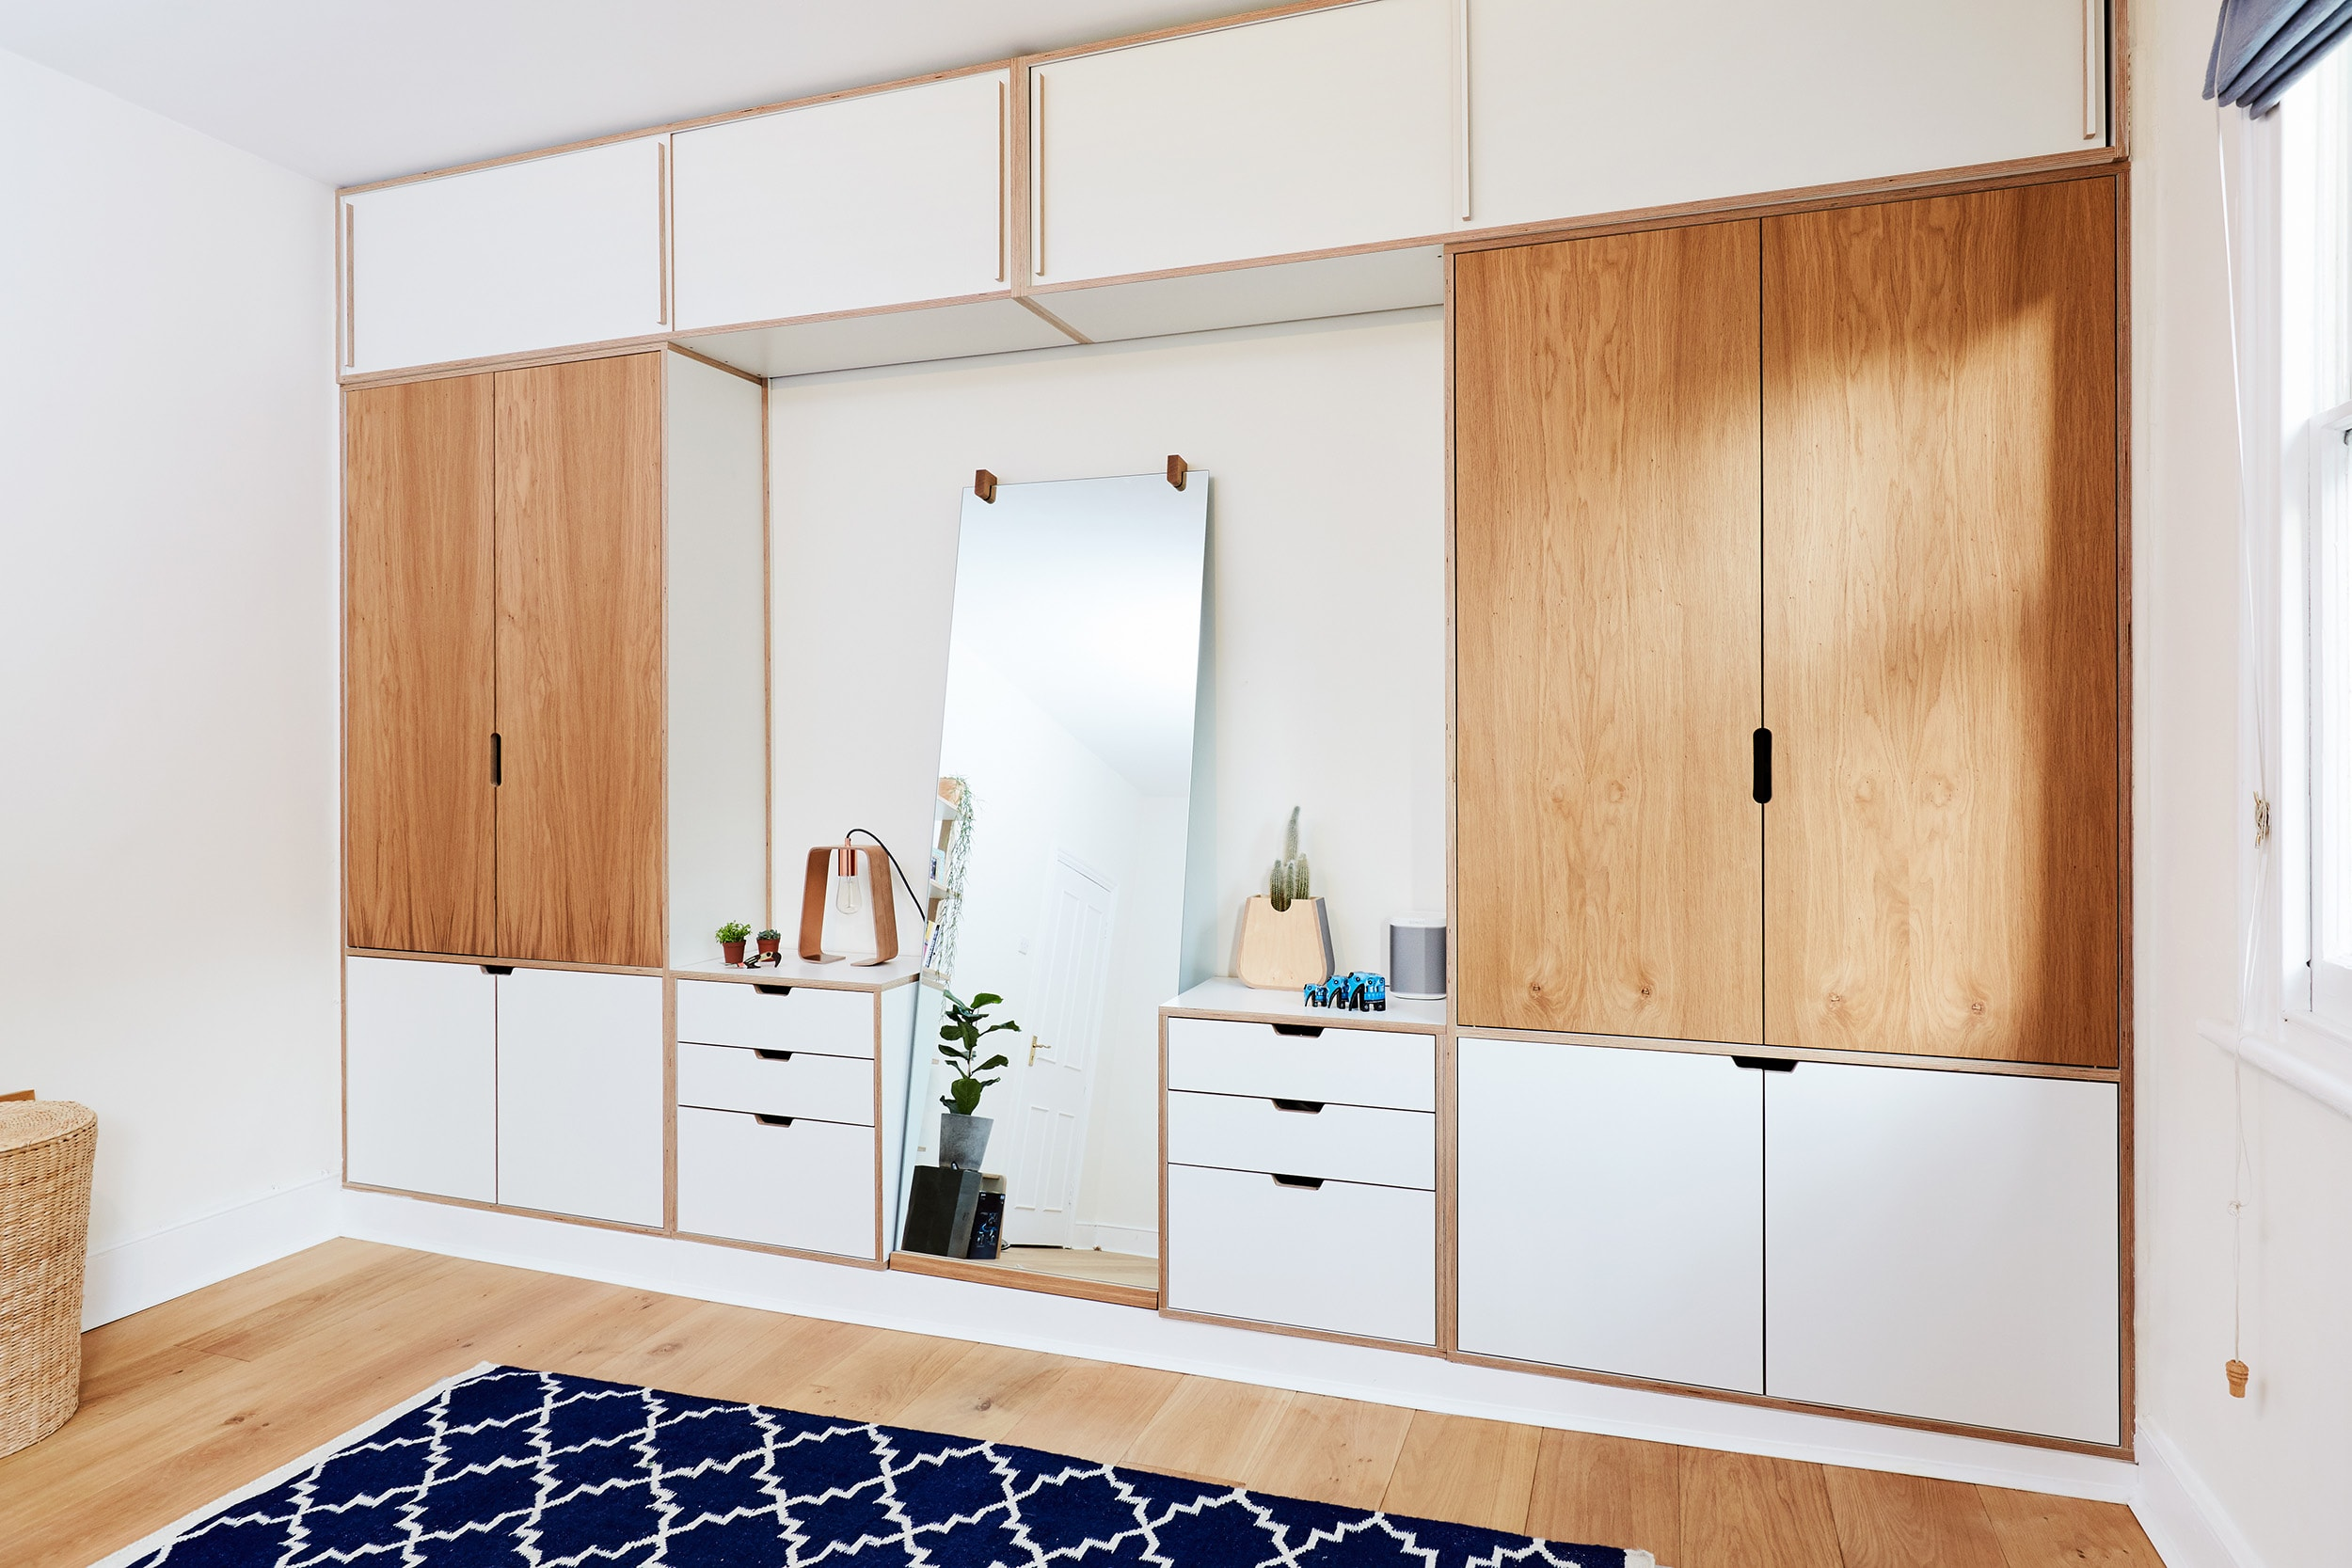 A wall to wall plywood wardrobe from Cass's house in Dalston, E8 designed by Lozi